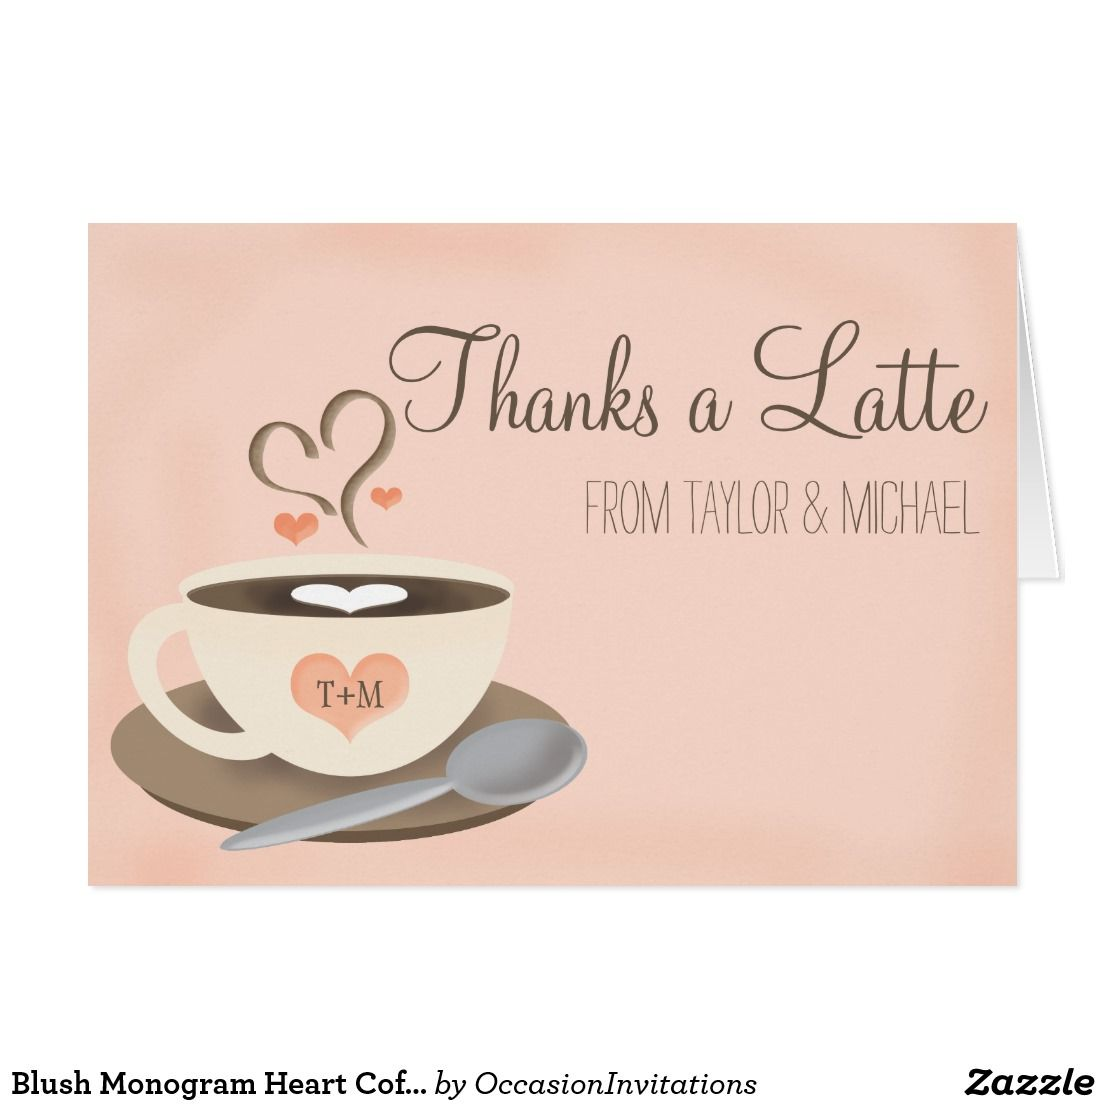 83bea0ef6c9 Blush Monogram Heart Coffee Cup Wedding Thank You Card Espresso your joy  and thanks with a latte love with these sweet and pretty coffee themed  wedding ...